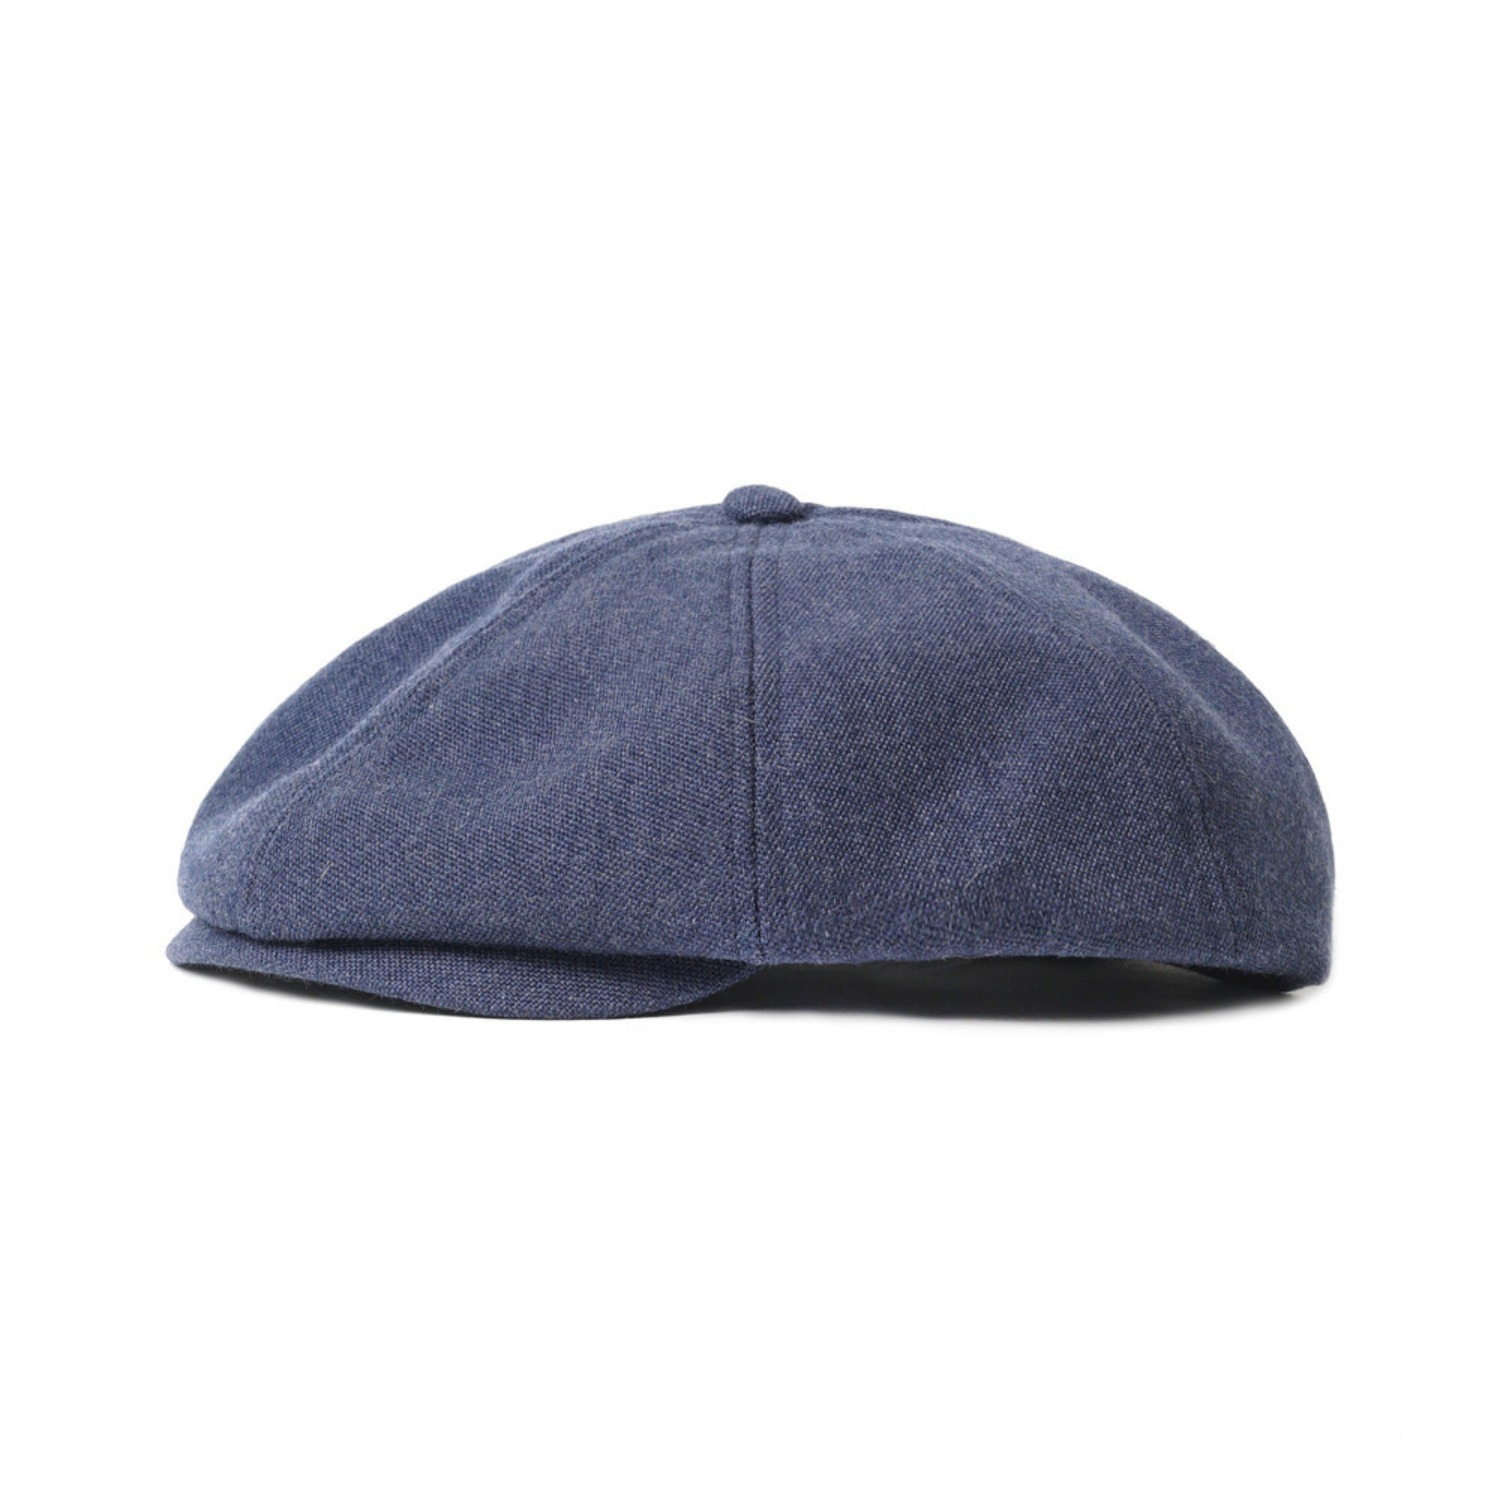 "Gooseberry Lay & Co. 20's News Boy Cap ""Indigo Wool"""